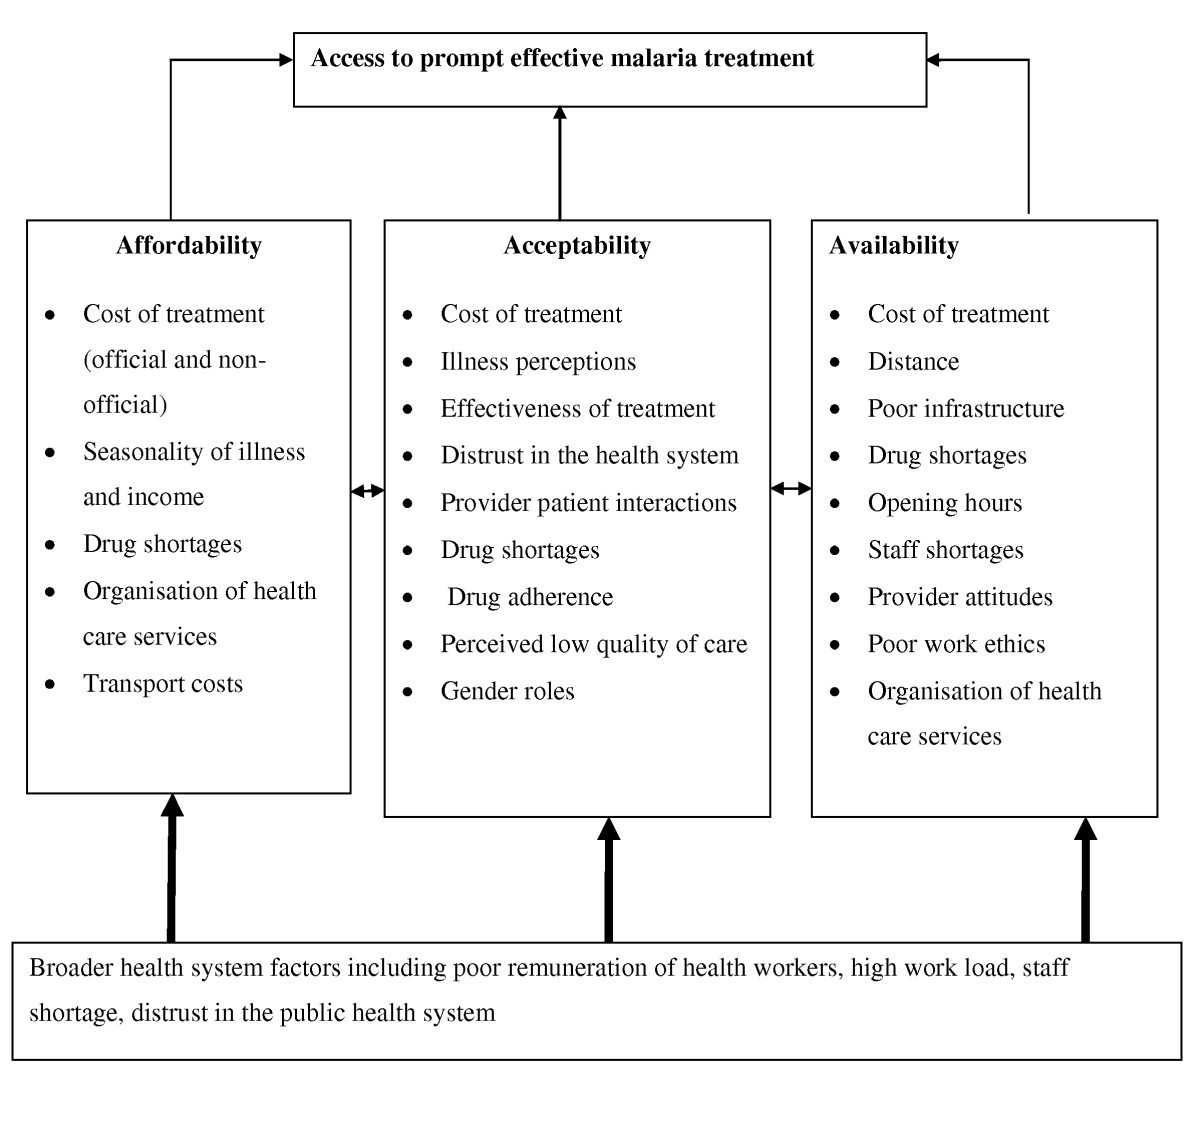 Barriers to prompt and effective malaria treatment among the poorest on